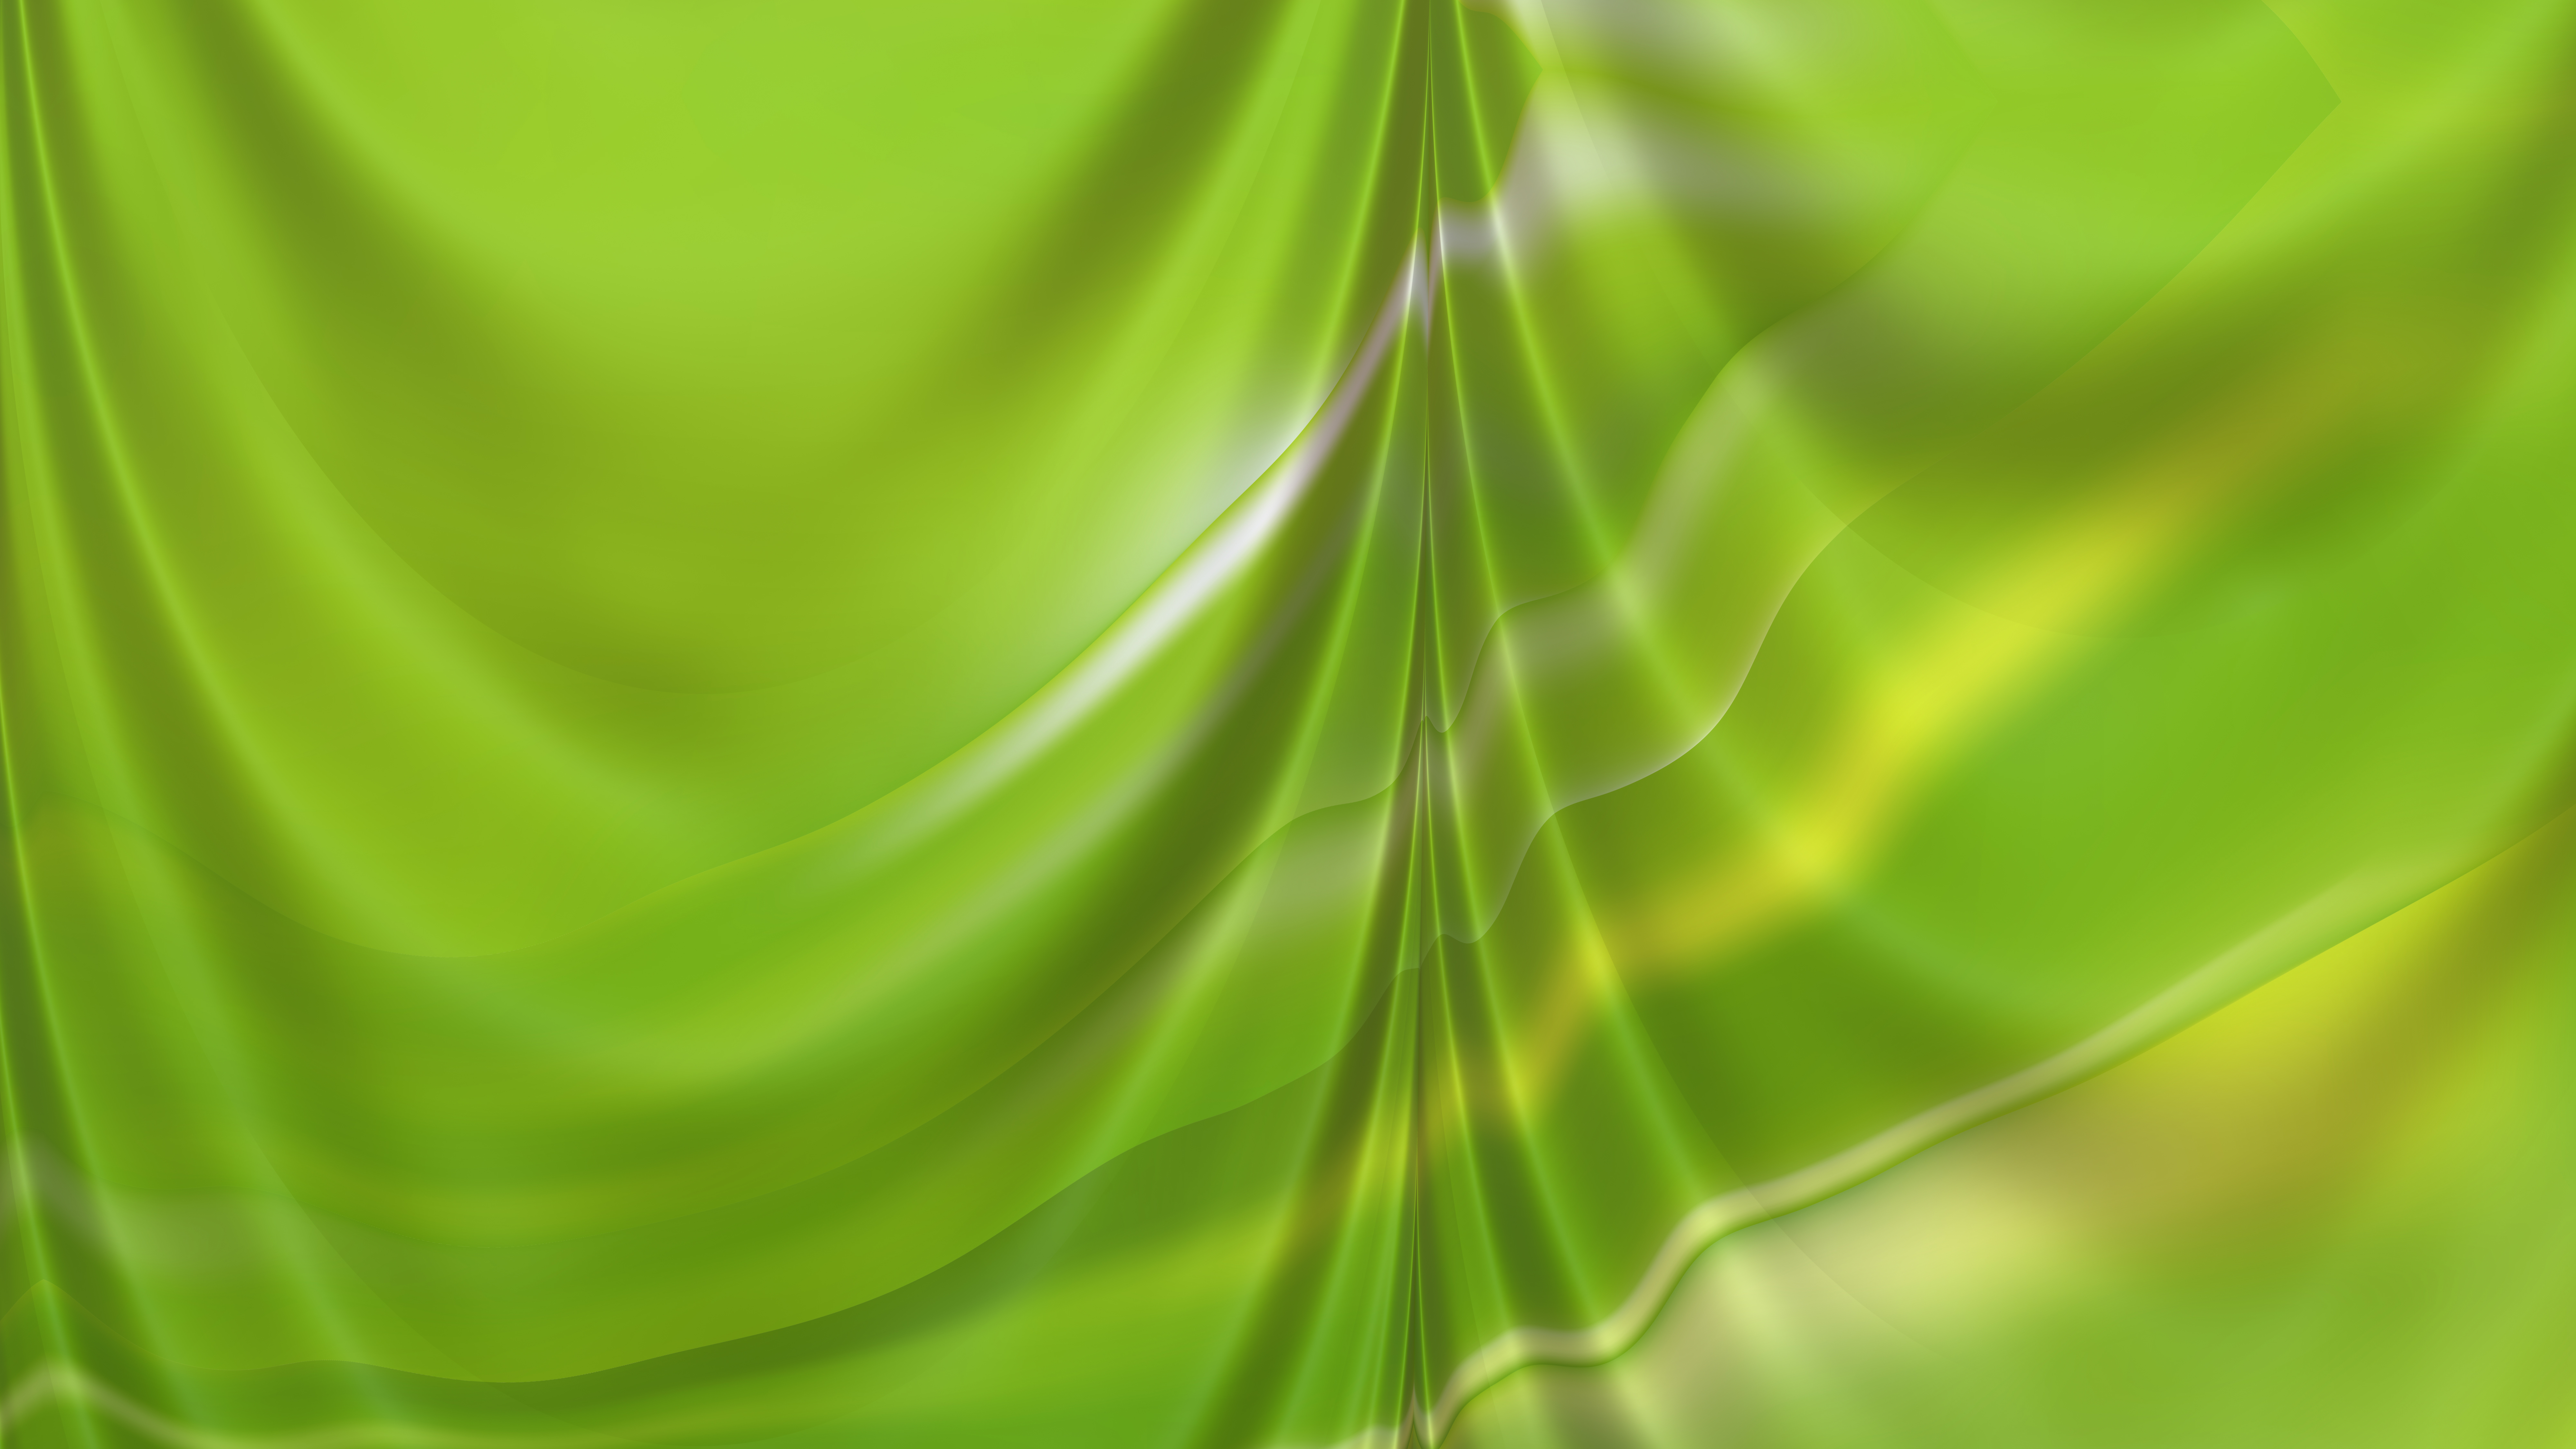 Abstract Lime Green Drapery Background